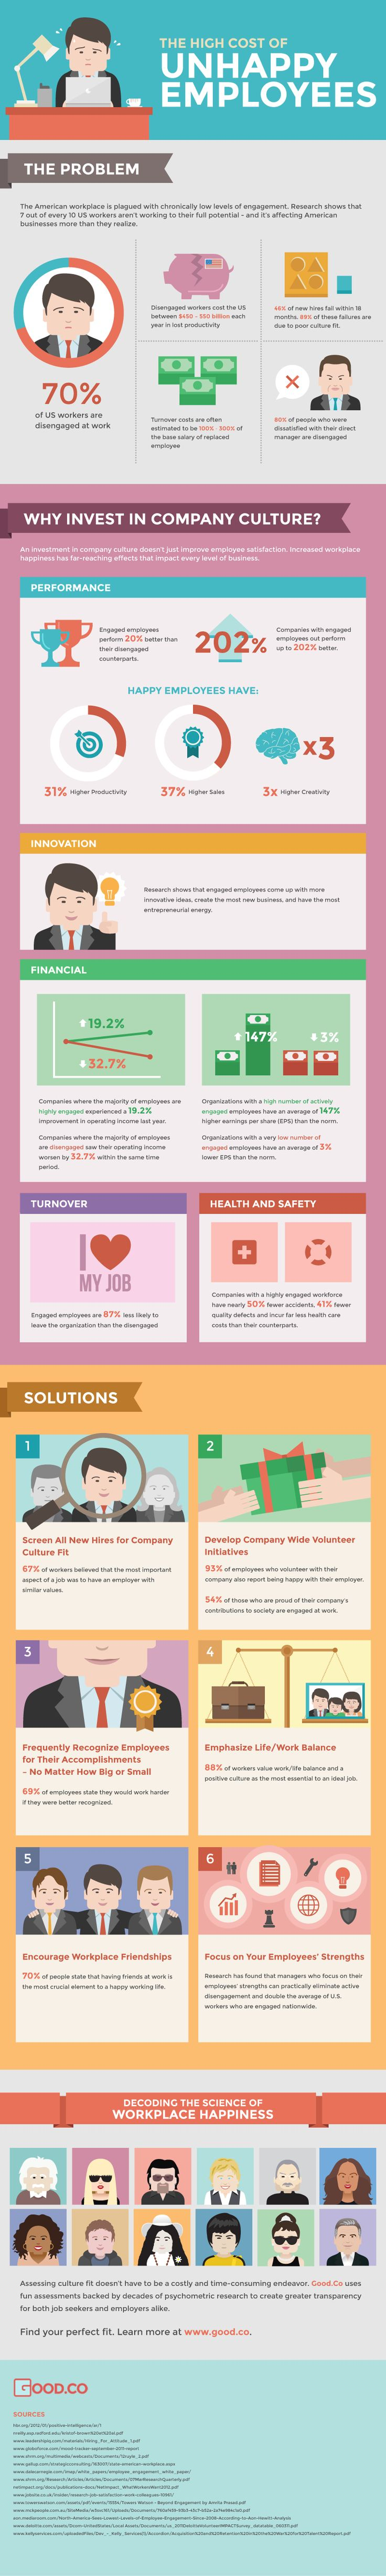 The High Cost of Unhappy Employees [INFOGRAPHIC]